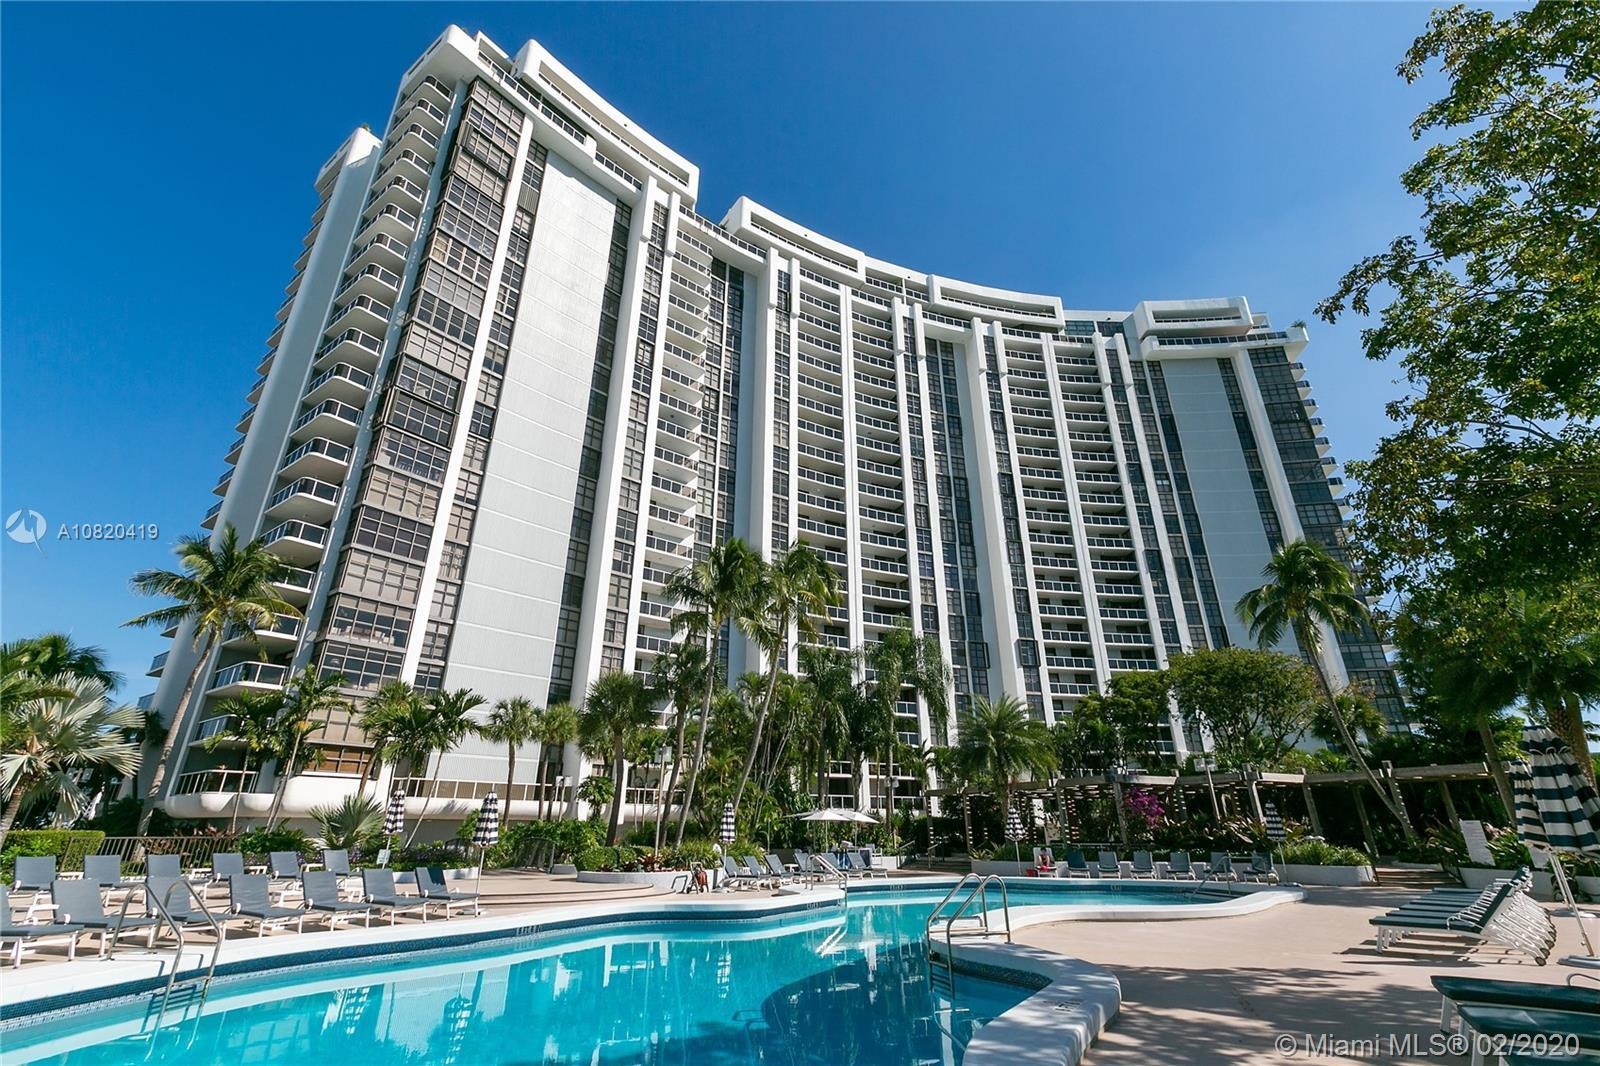 Three bedrooms, three baths, 2,400SF oversized condominium with two terraces. Building is completely